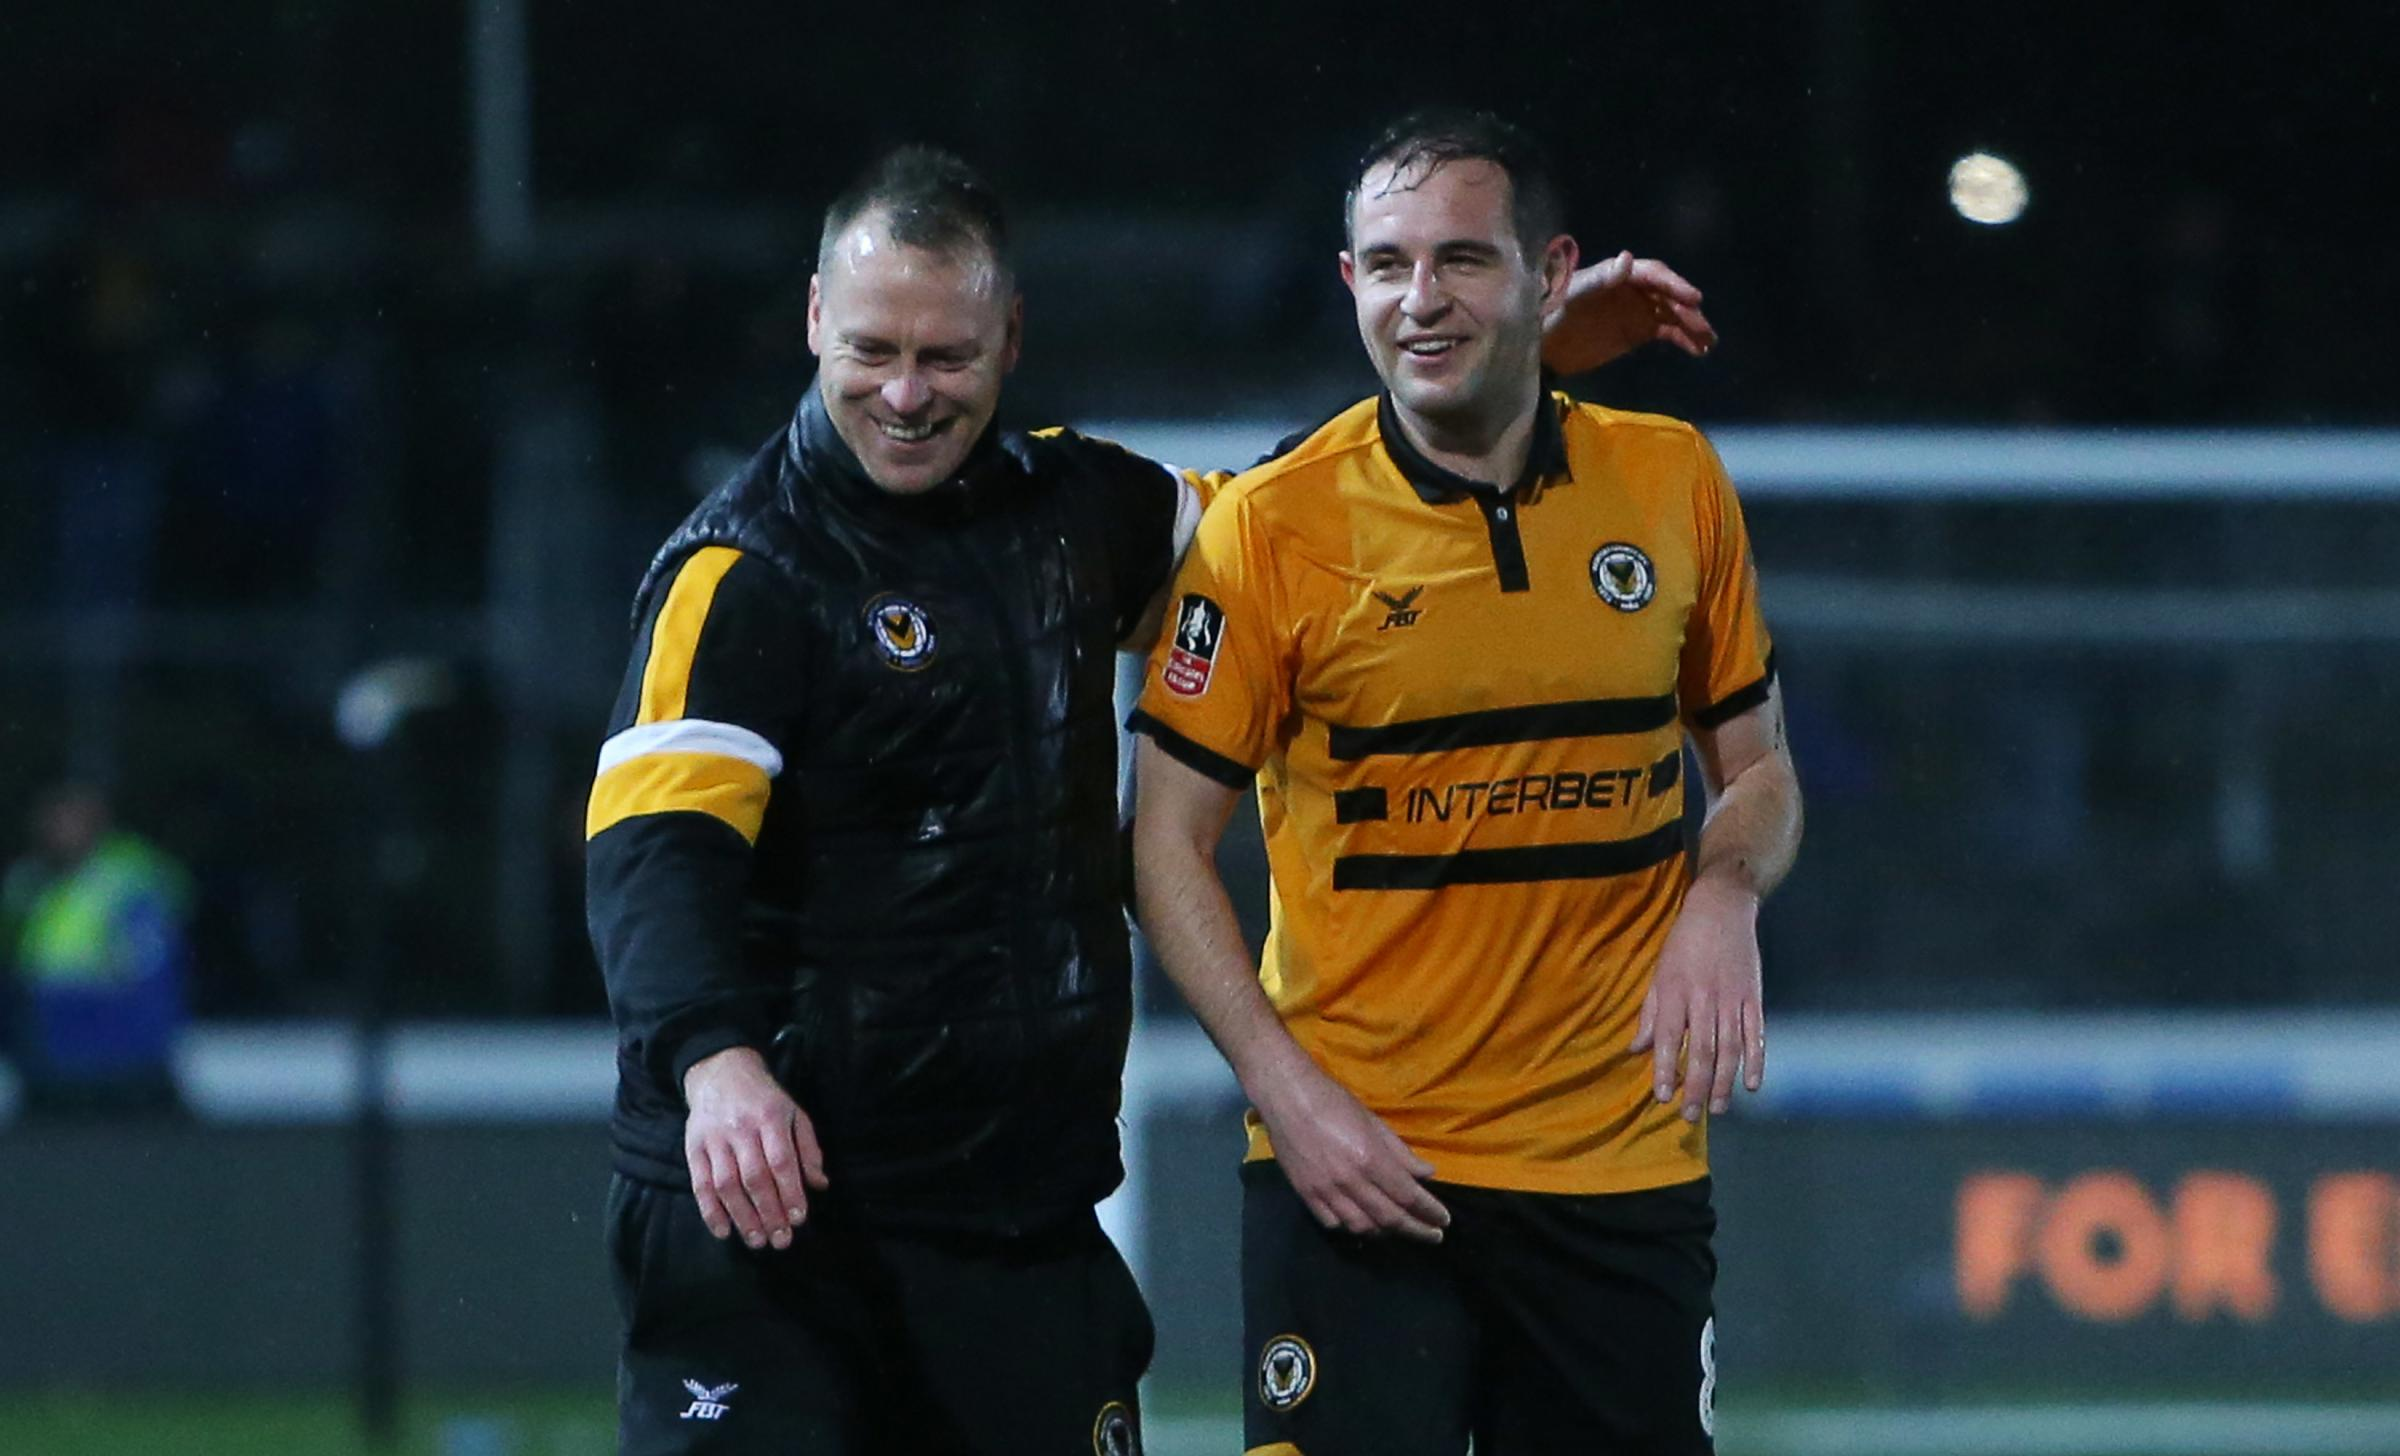 VICTORY: Newport County manager Michael Flynn and Matty Dolan celebrate the win over Middlesbrough. Pictures: Huw Evans Agency